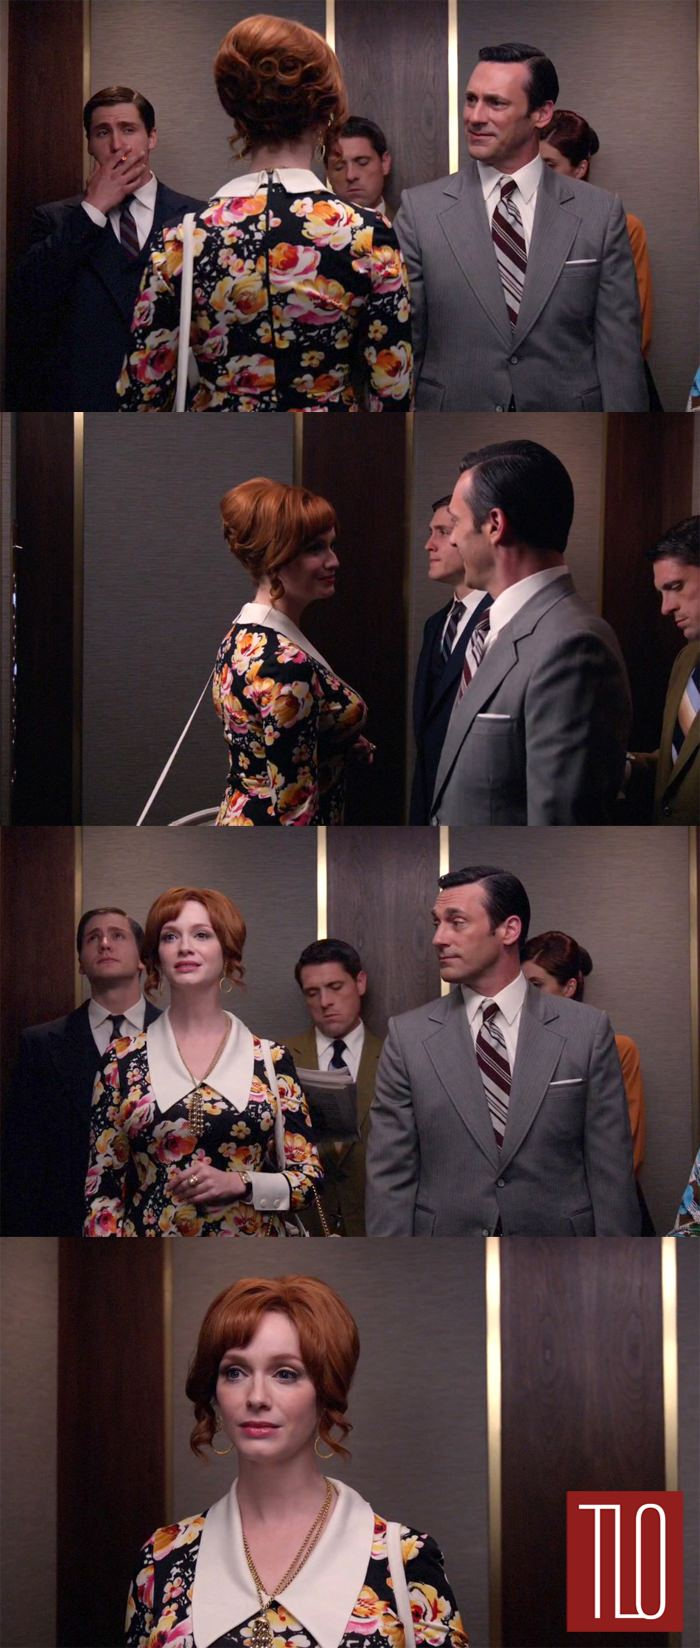 Mad-Men-Season-7-Episode-12-Mad-Style-Costumes-Tom-Lorenzo-Site-TLO (11)